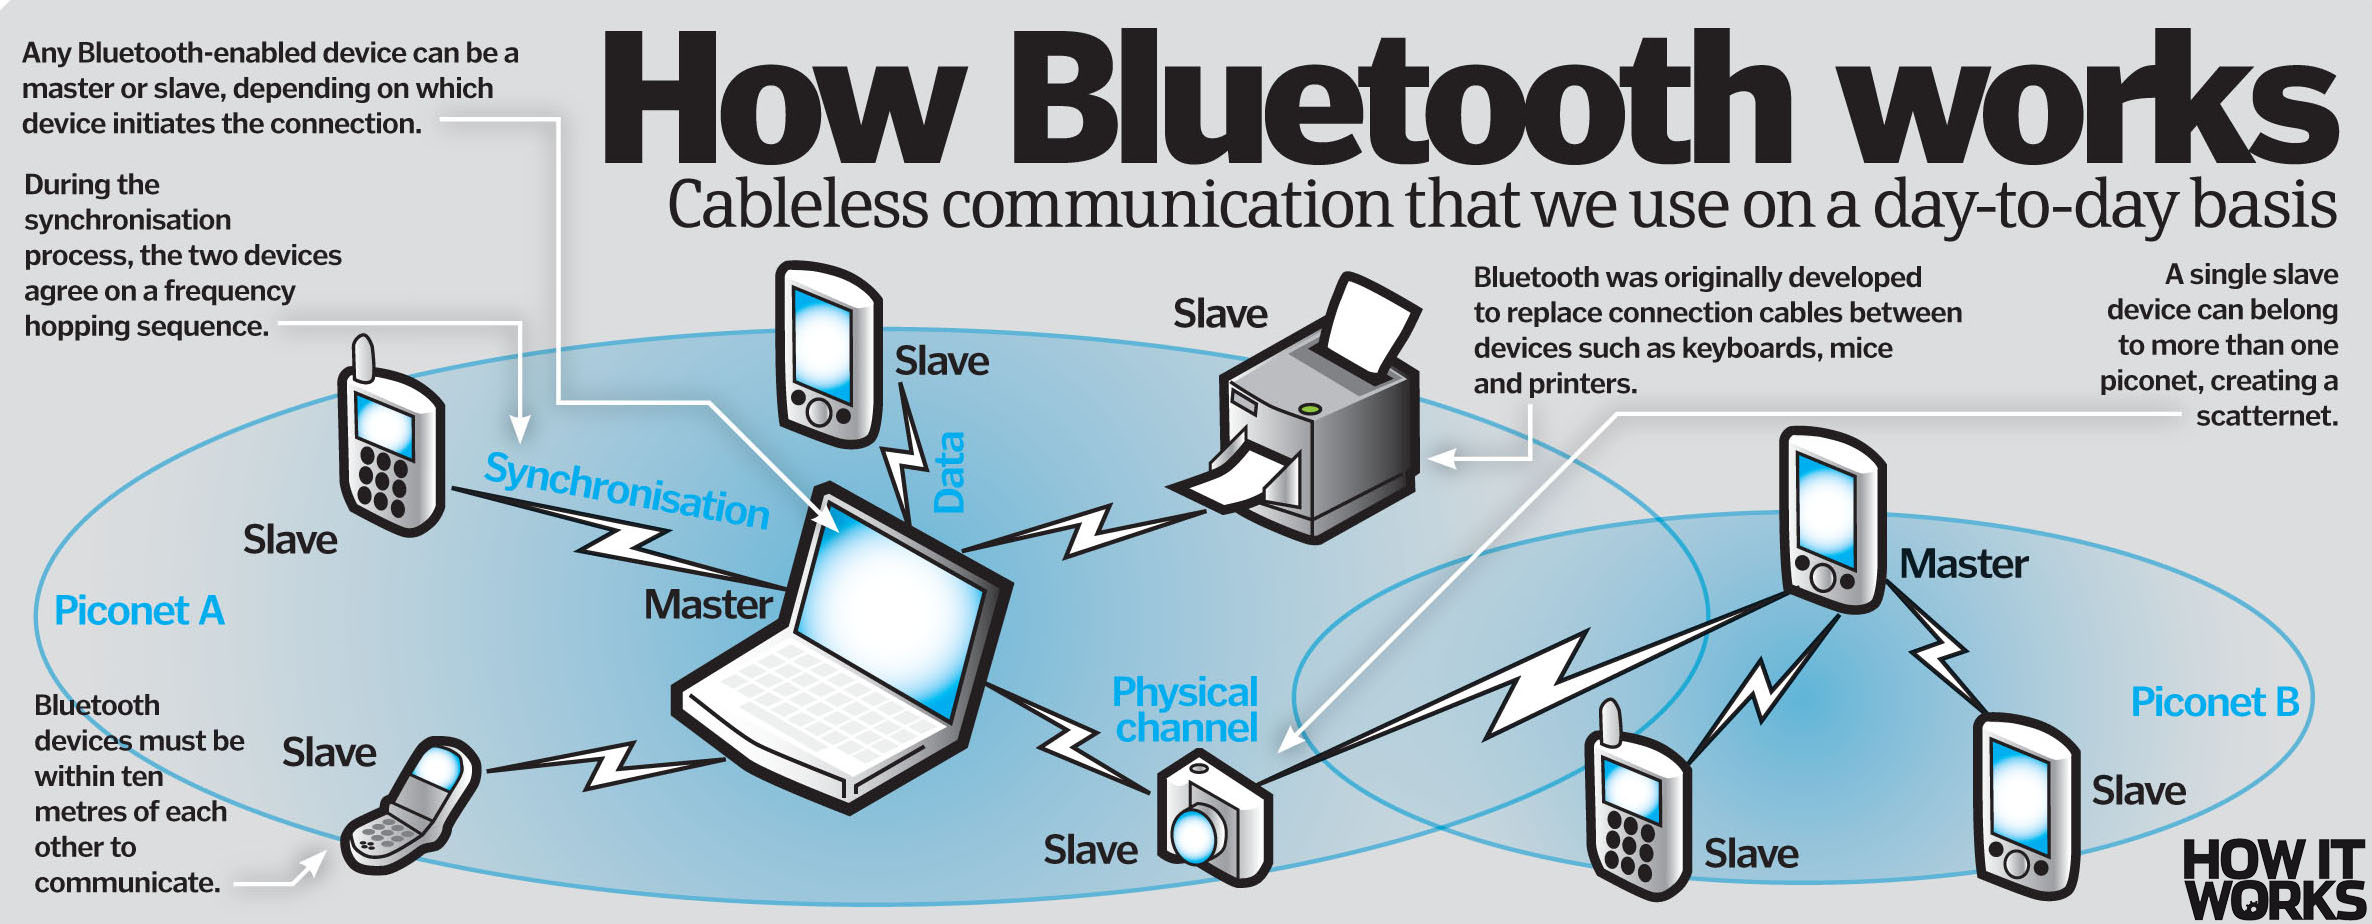 attacks on bluetooth devices (instead of randomly generating it on one of the devices) will be vulnerable to attack 1 introduction the new version 21 of the bluetooth speciflcation was released recently in july 2007 and contains.